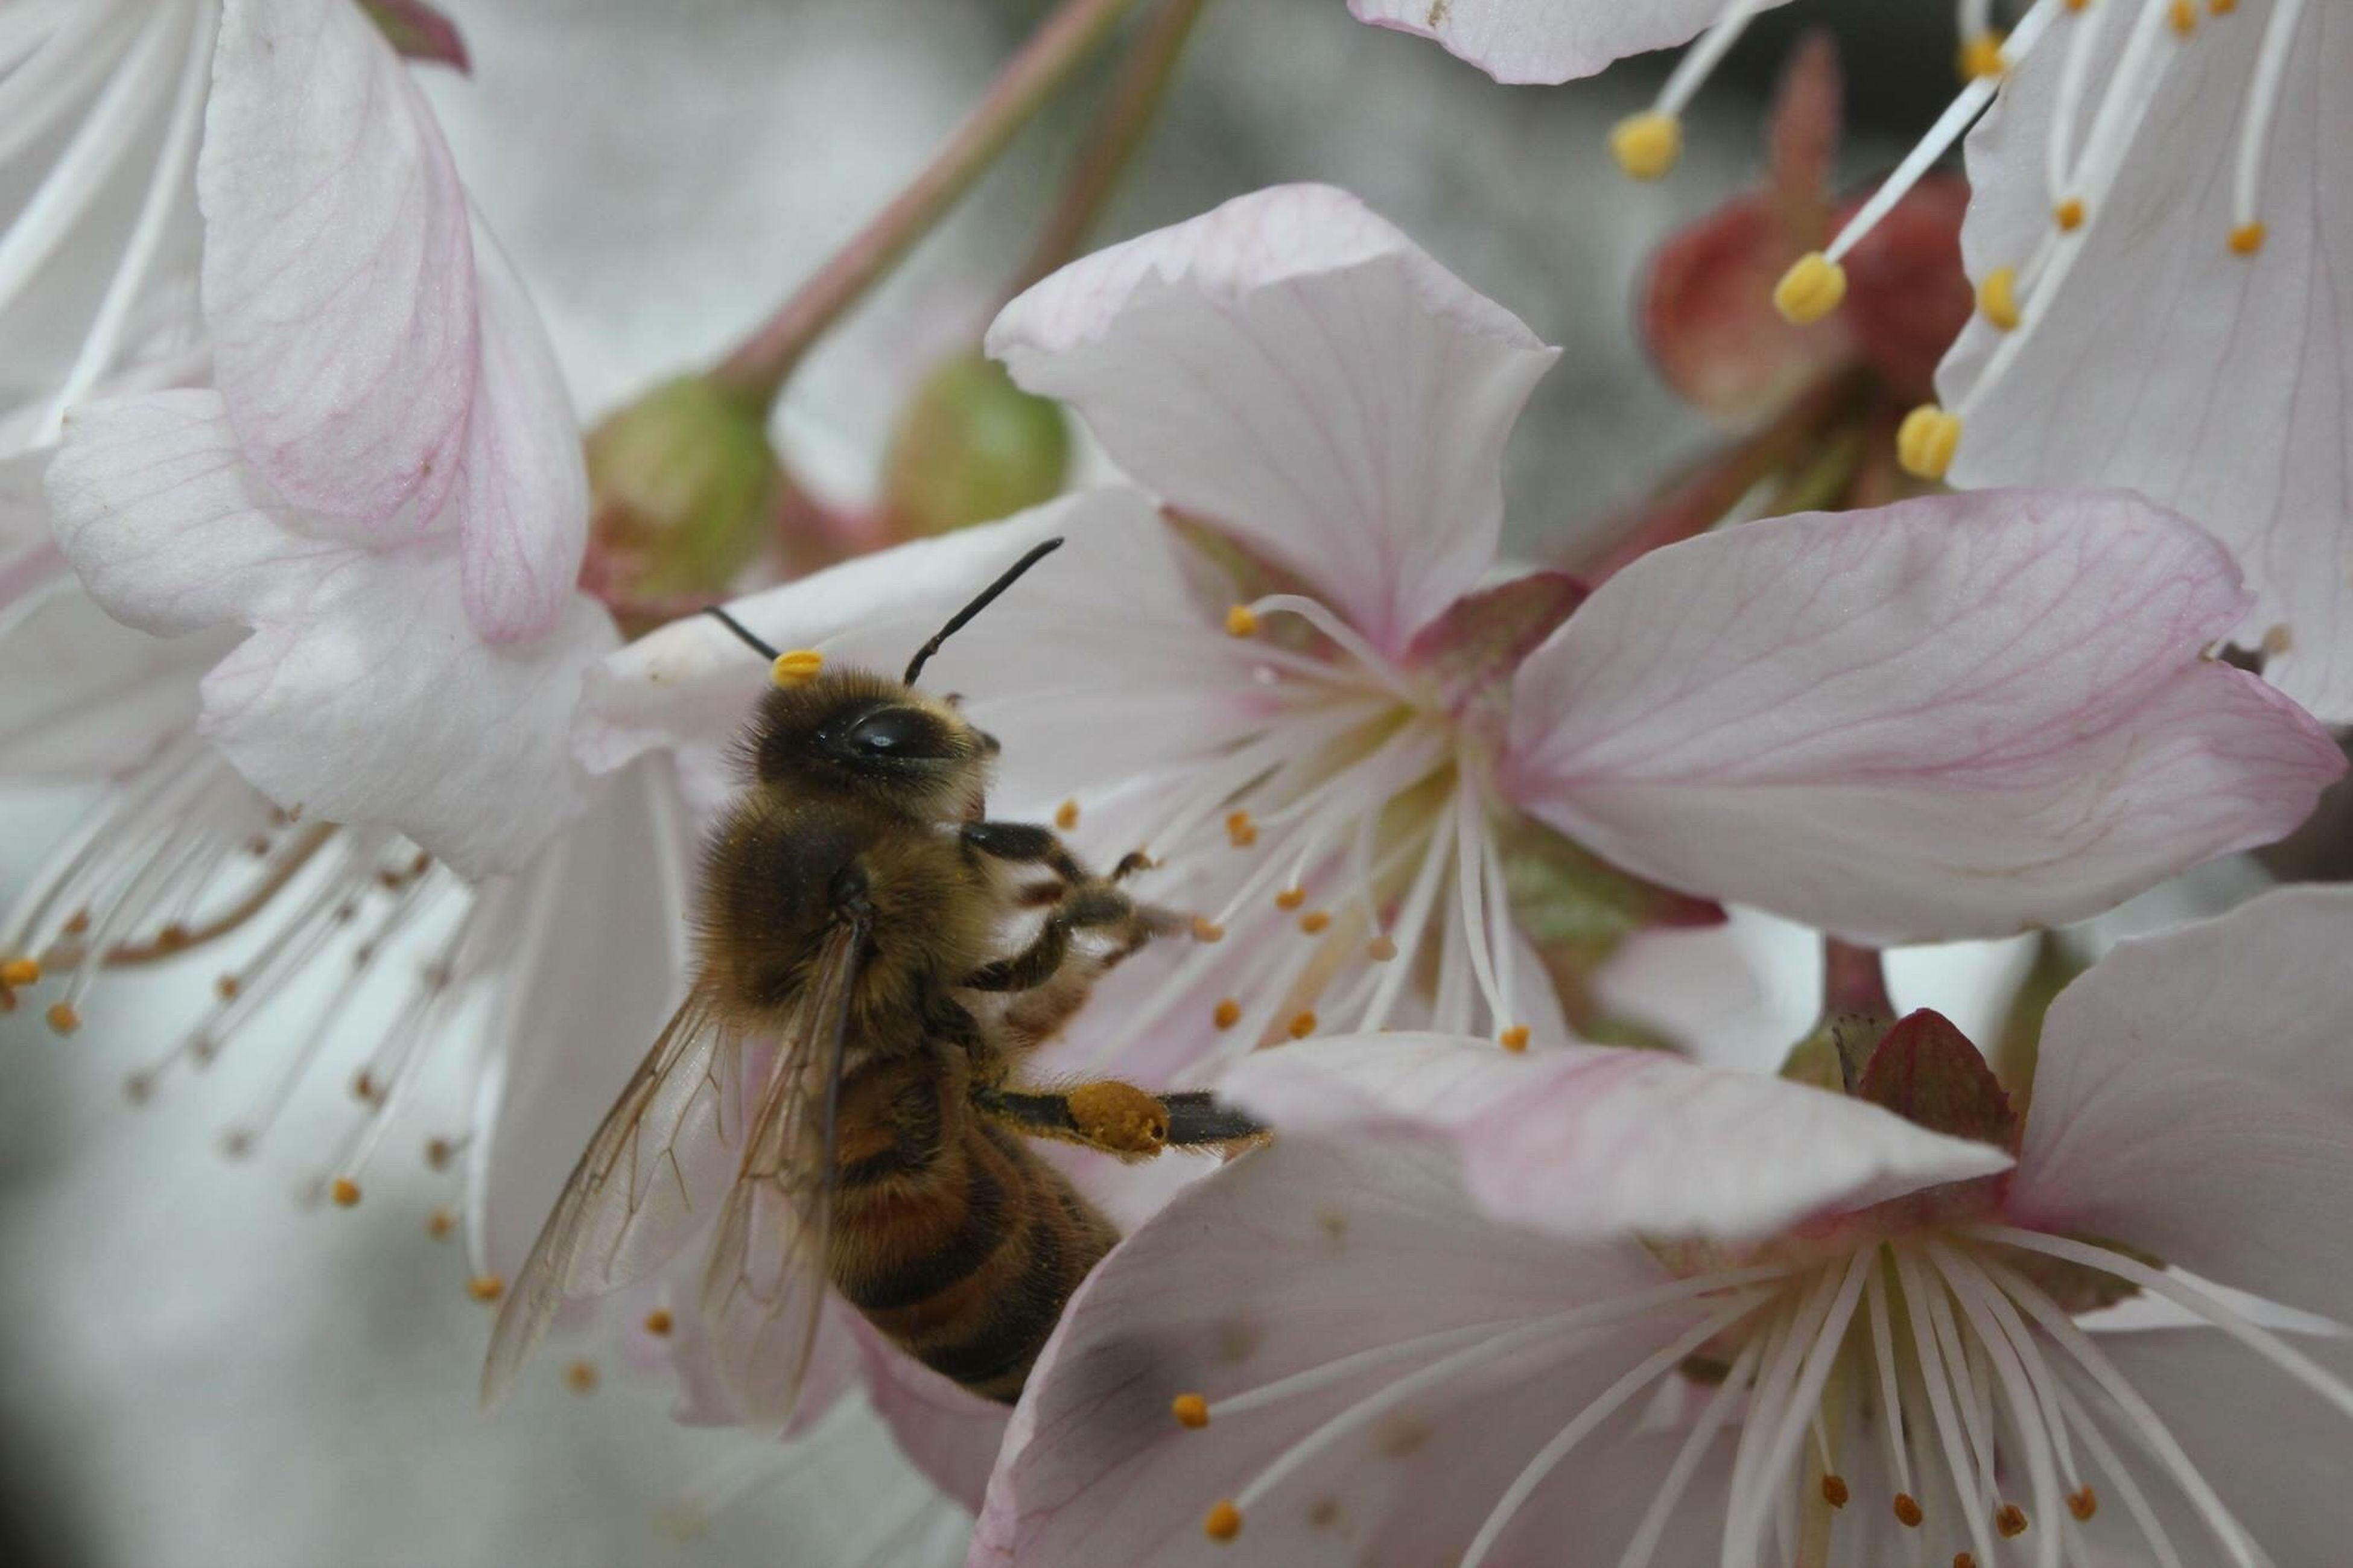 animal themes, flower, animals in the wild, wildlife, insect, one animal, petal, pollination, fragility, bee, freshness, beauty in nature, close-up, nature, flower head, growth, symbiotic relationship, focus on foreground, honey bee, white color